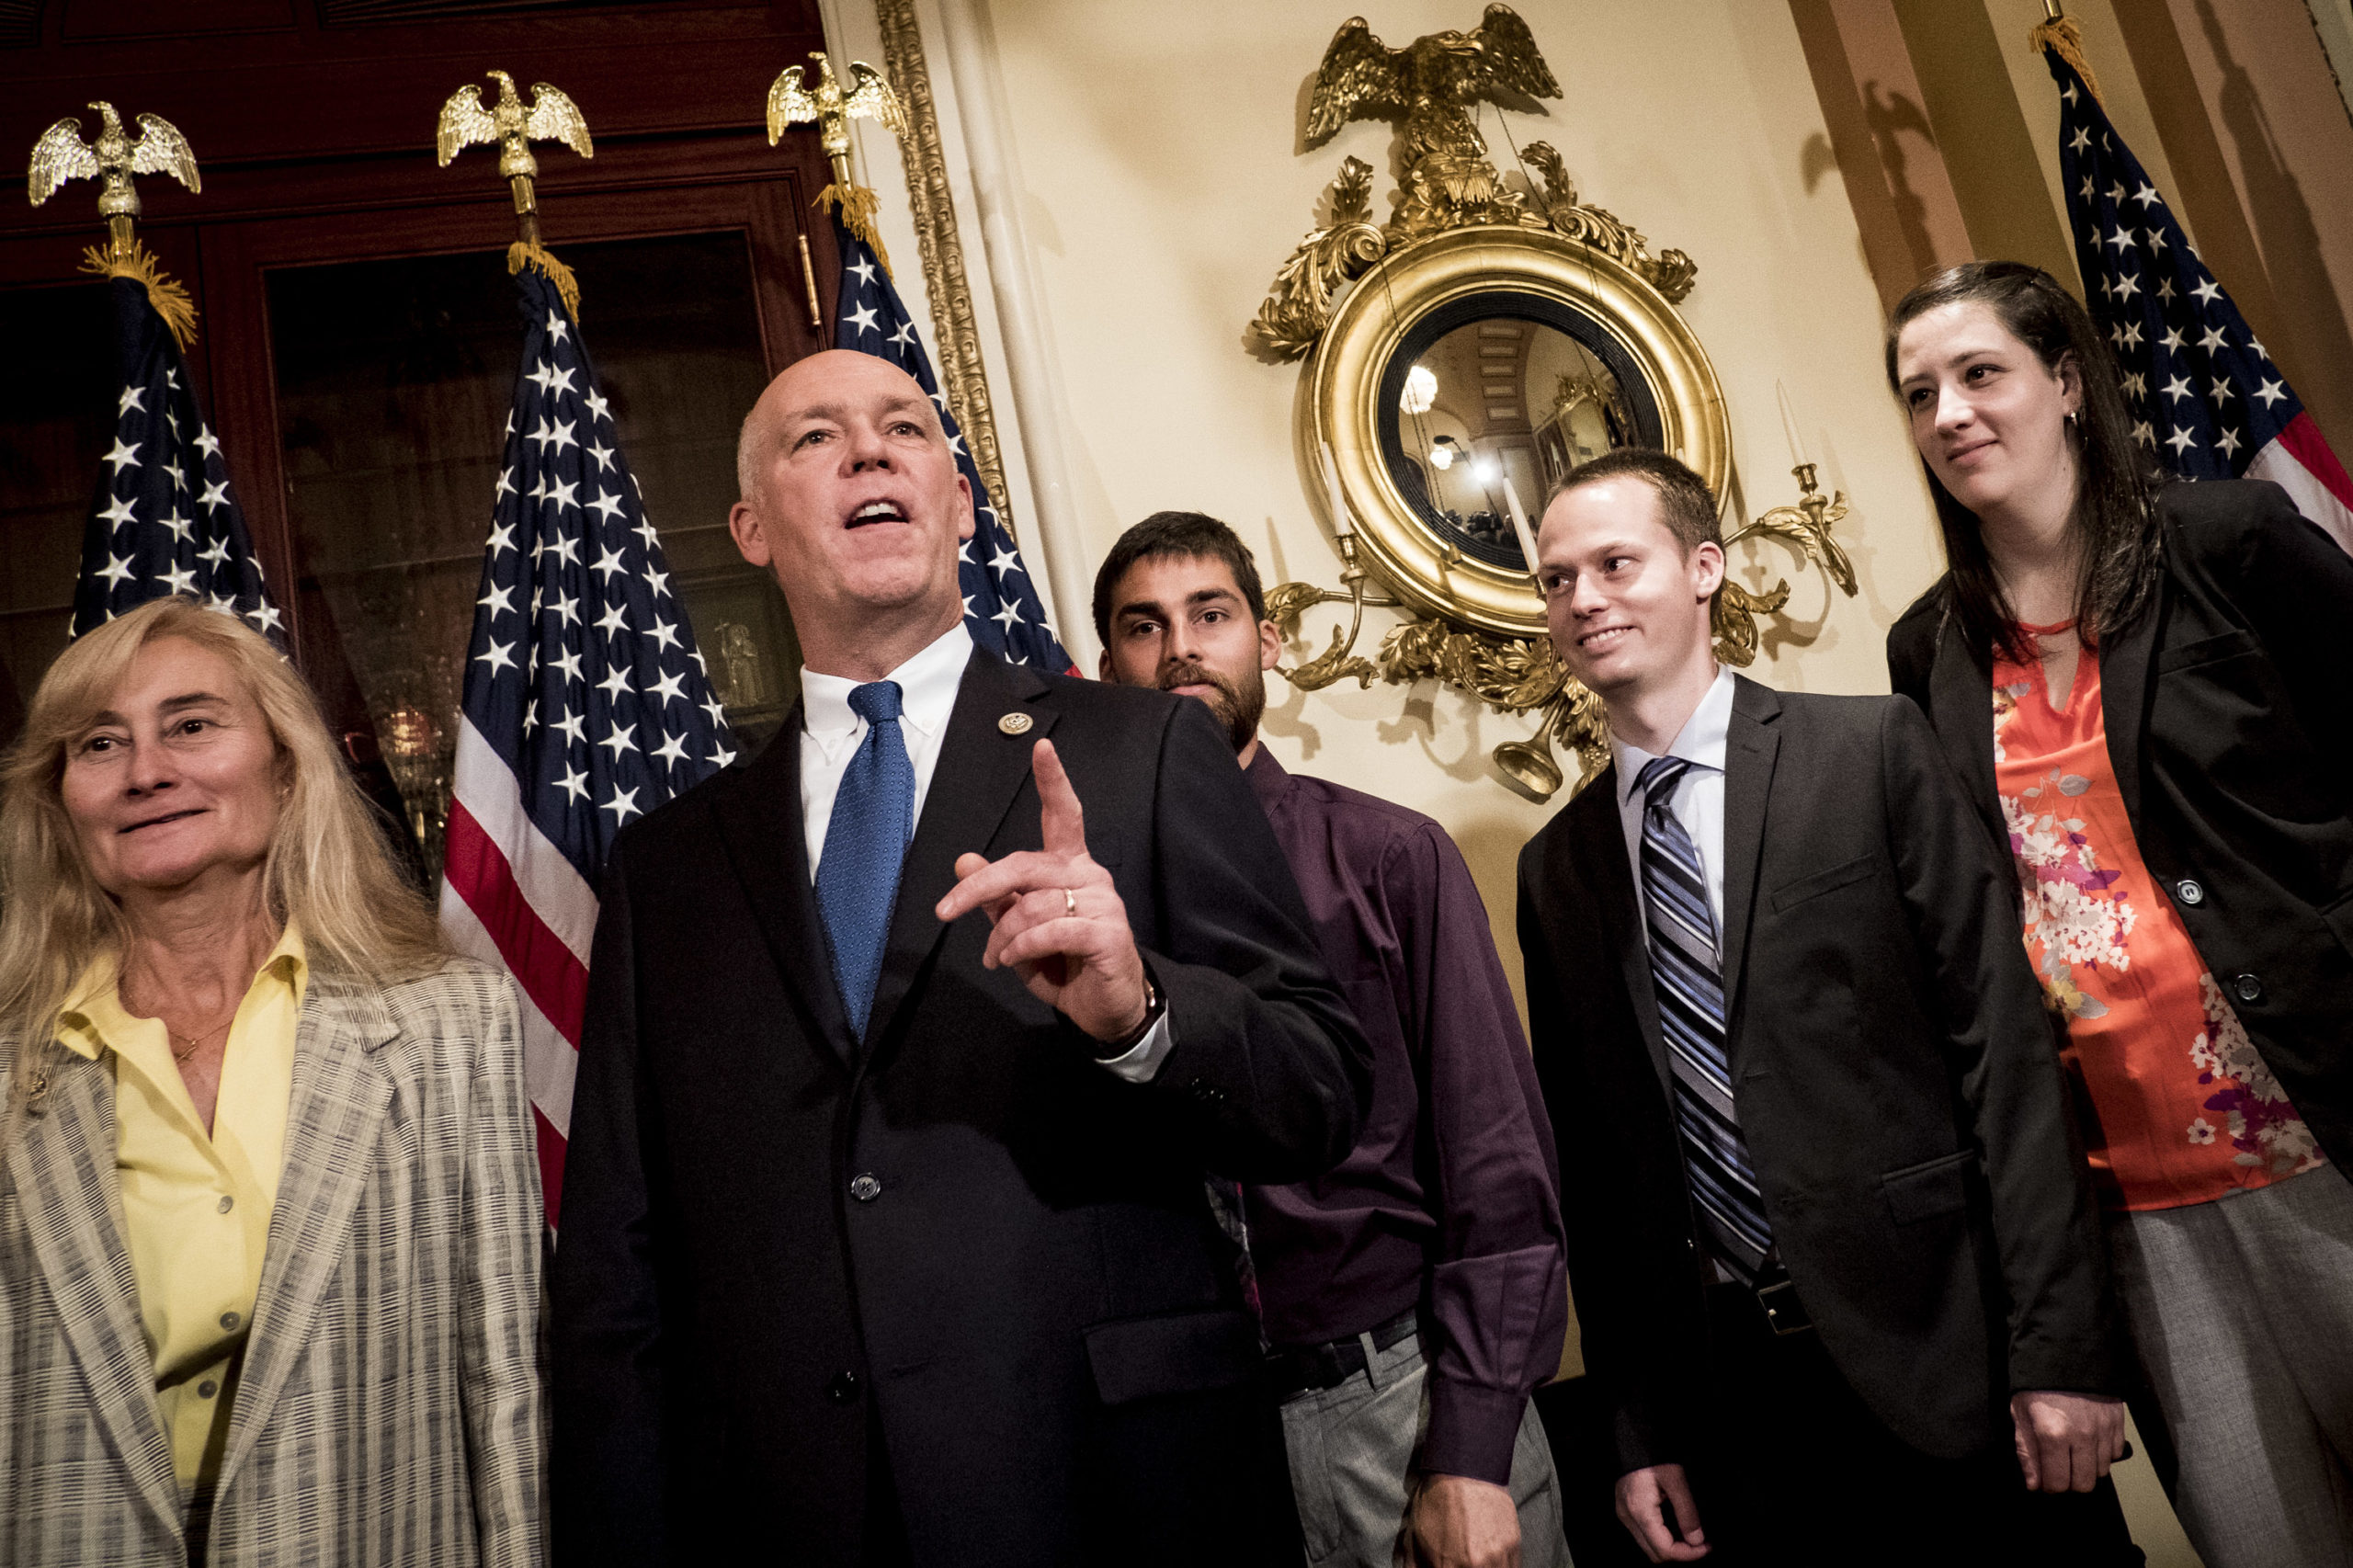 Montana Republican Greg Gianforte speaks to the press on June 21, 2017 in Washington, D.C. (Pete Marovich/Getty Images)